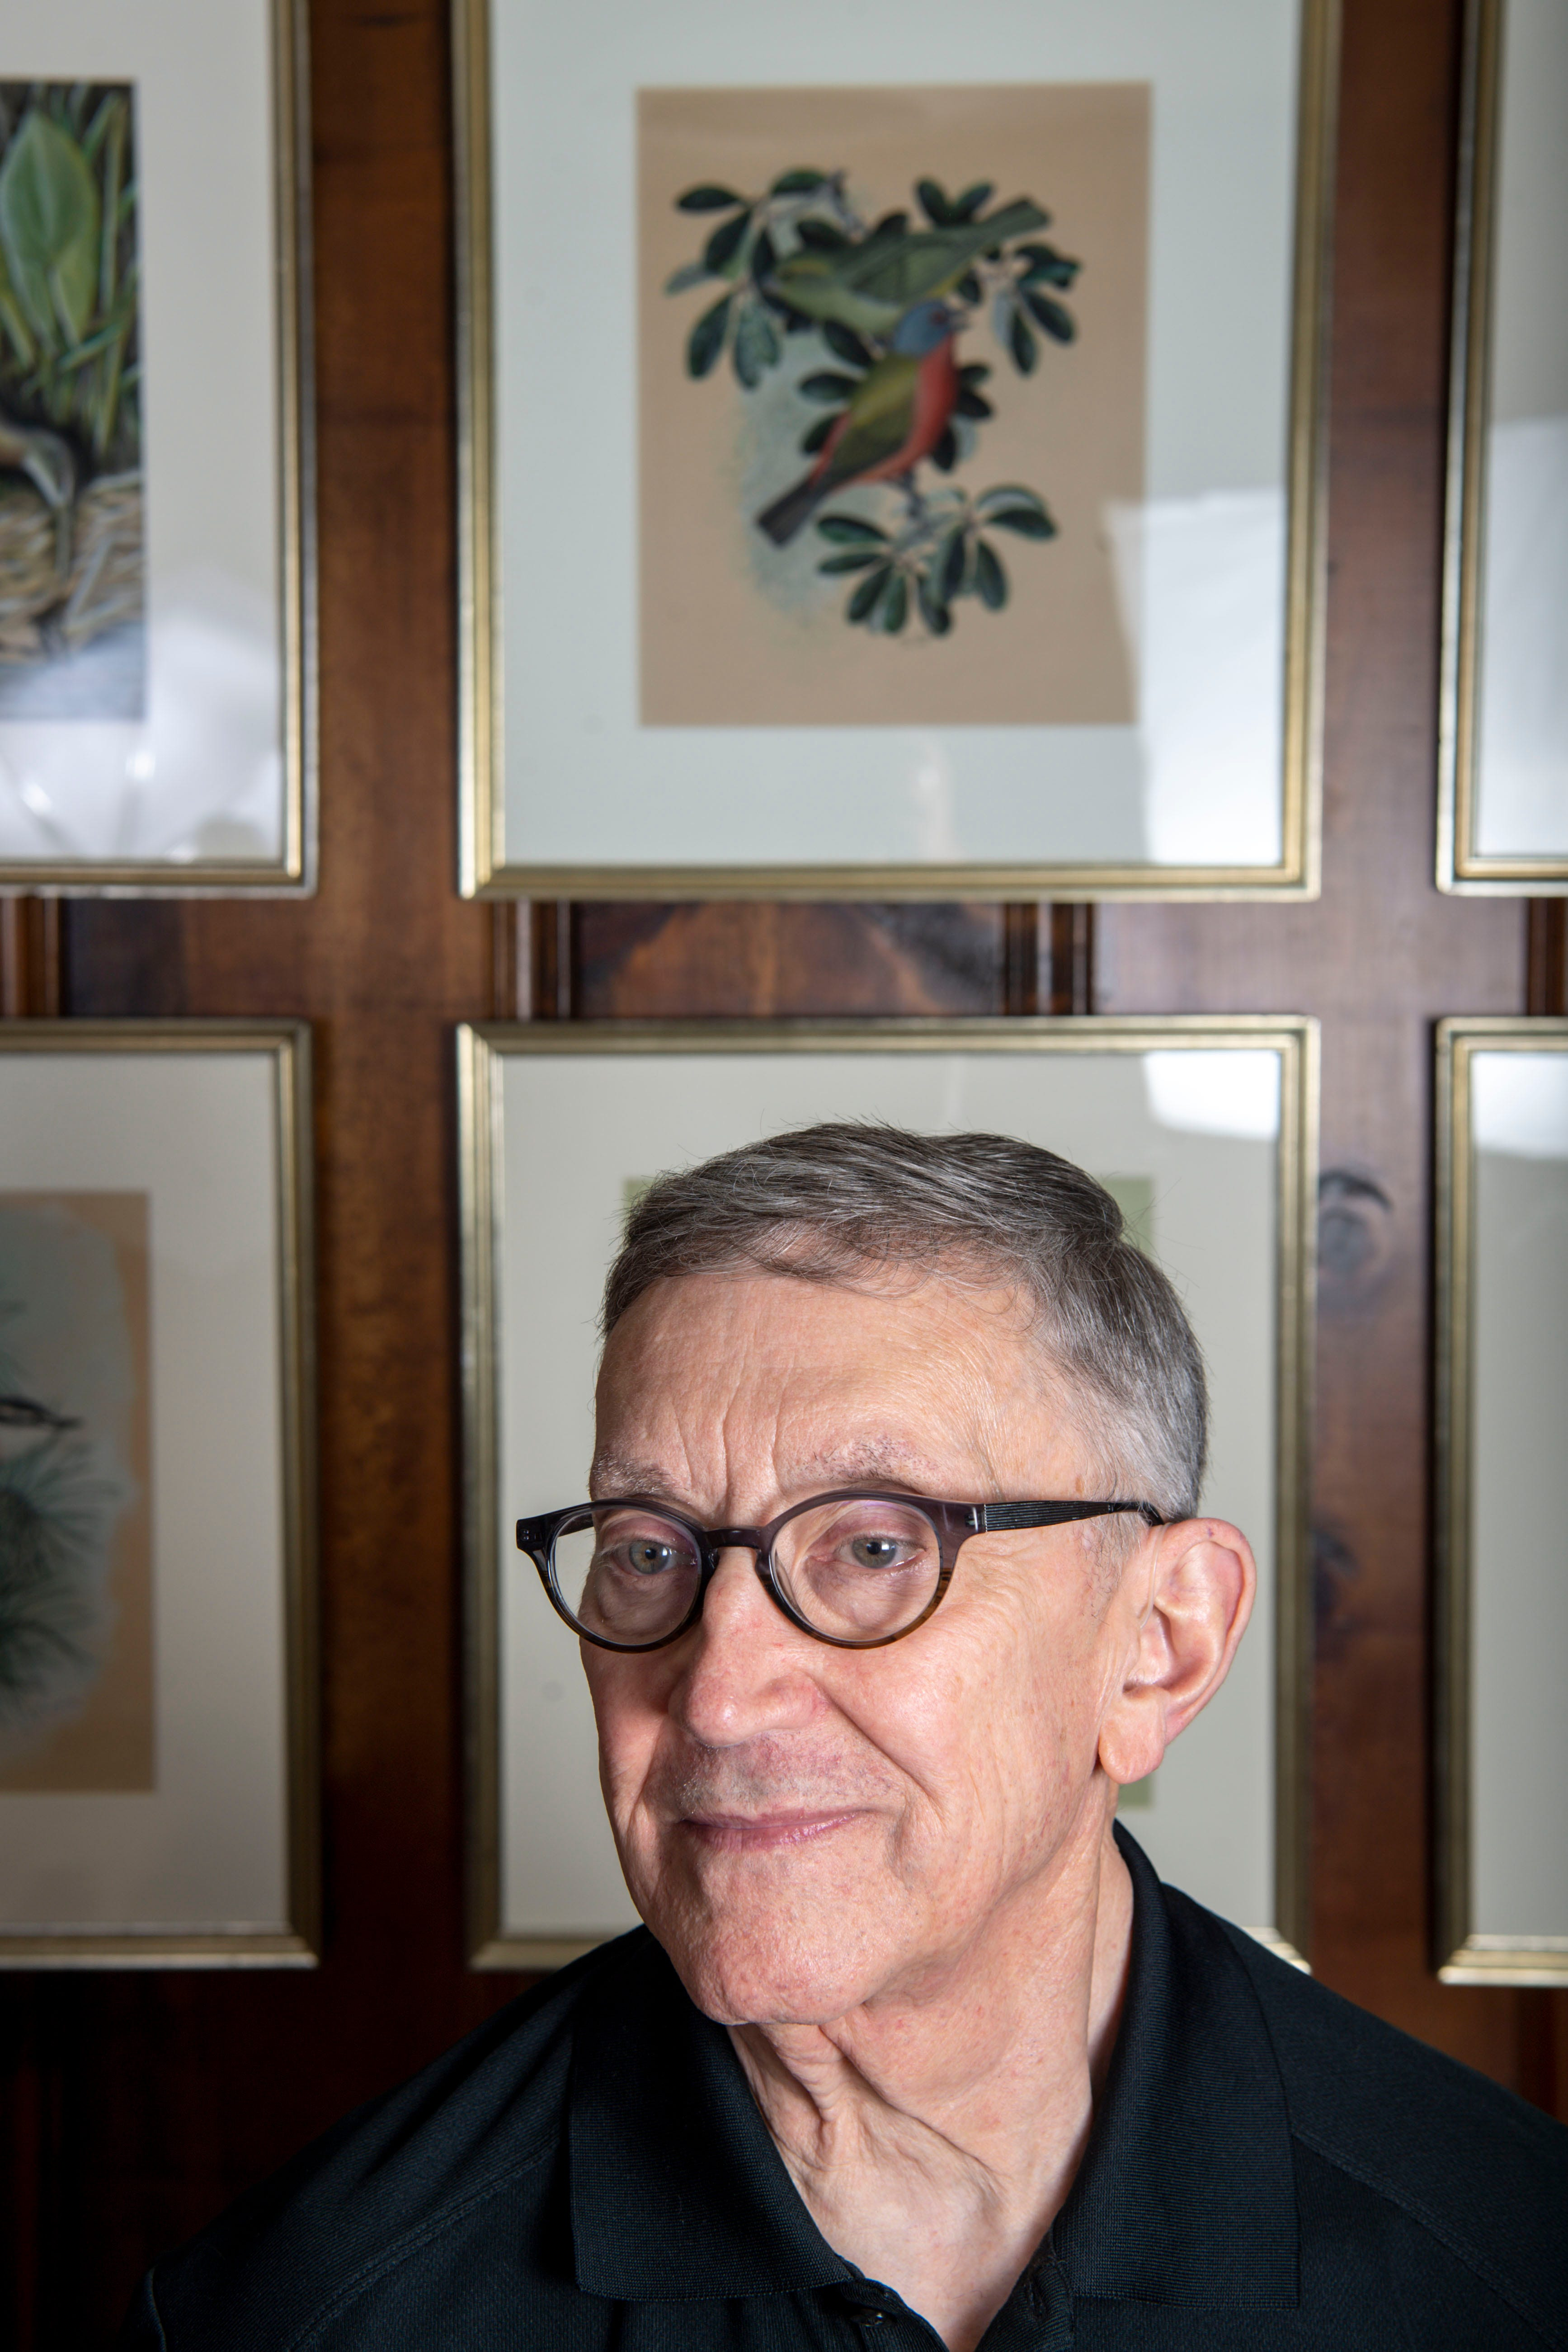 Earl Henry, Jr., is pictured in front of a collection of paintings done by his father Earl Henry, Sr., who was lost at sea when the U.S.S. Indianapolis was hit by Japanese torpedoes in 1945, at his home in Belle Meade, Tenn., on Monday, July 19, 2021.